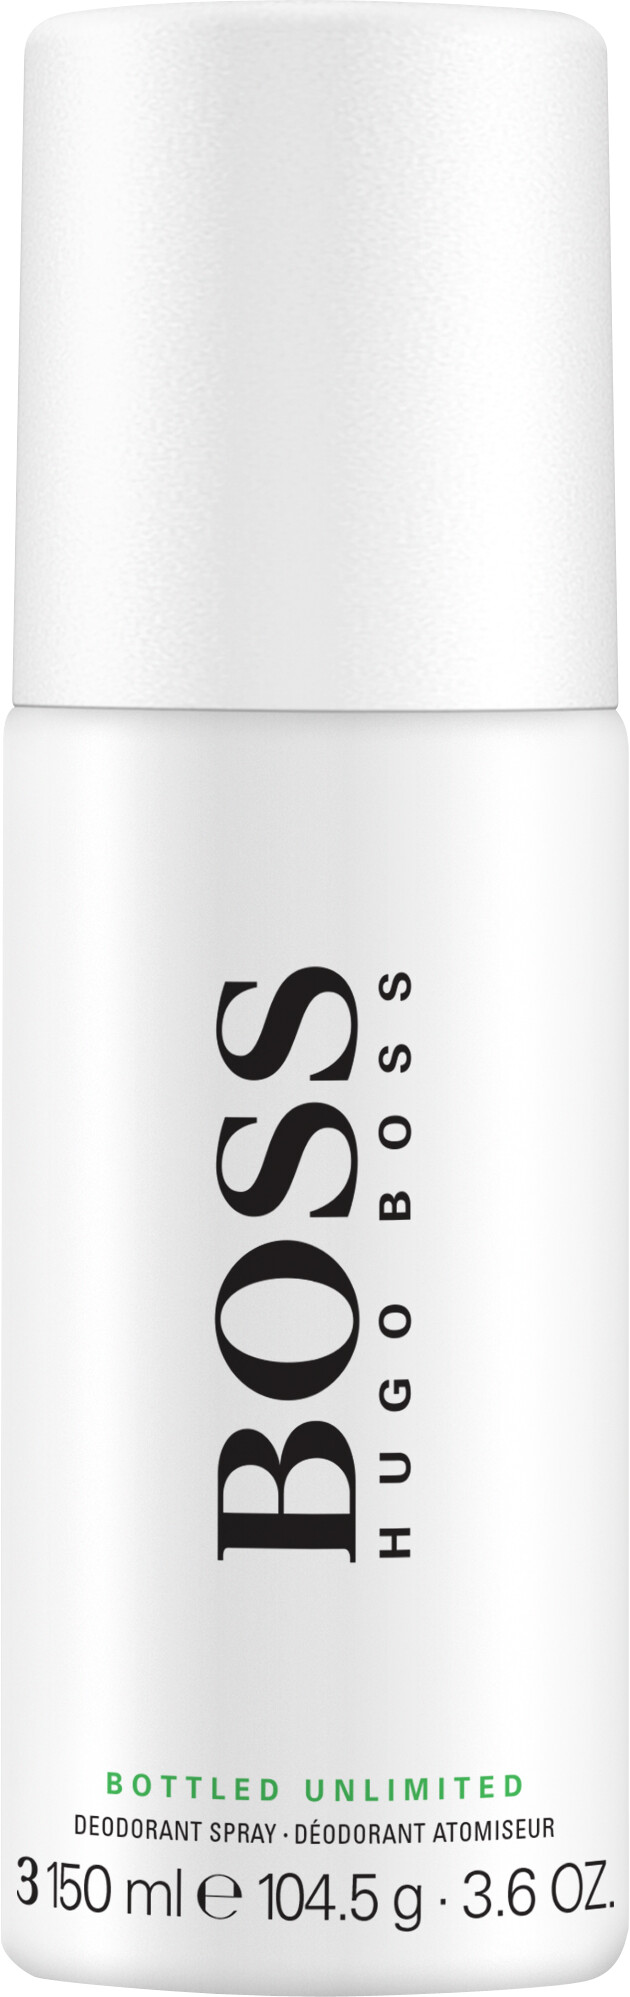 HUGO BOSS BOSS BOTTLED. UNLIMITED Deodorant Spray 150ml